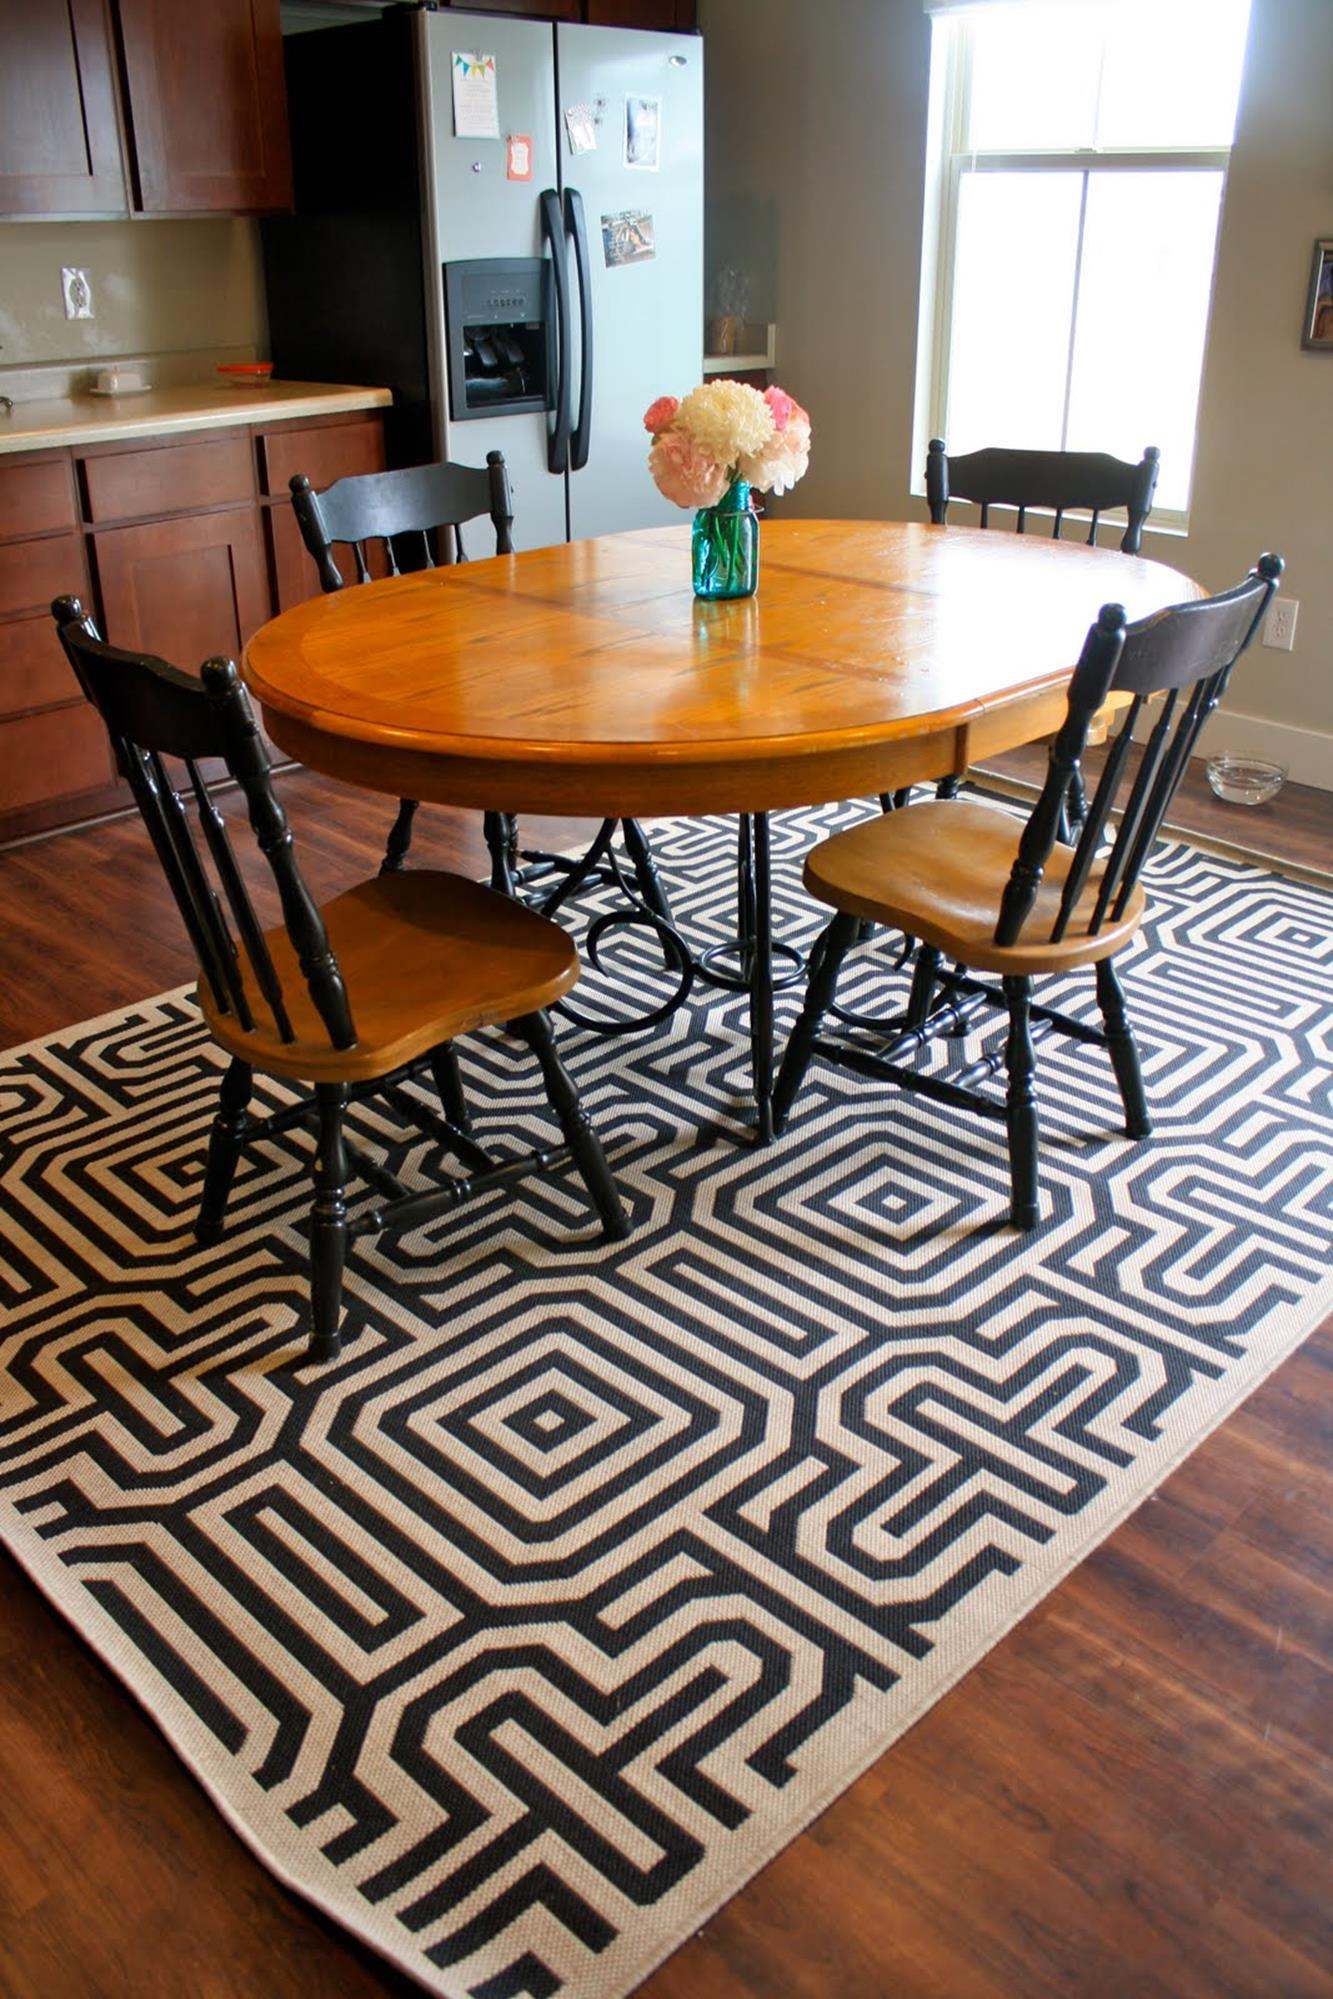 Best Cheap Rugs for Under Kitchen Table 11